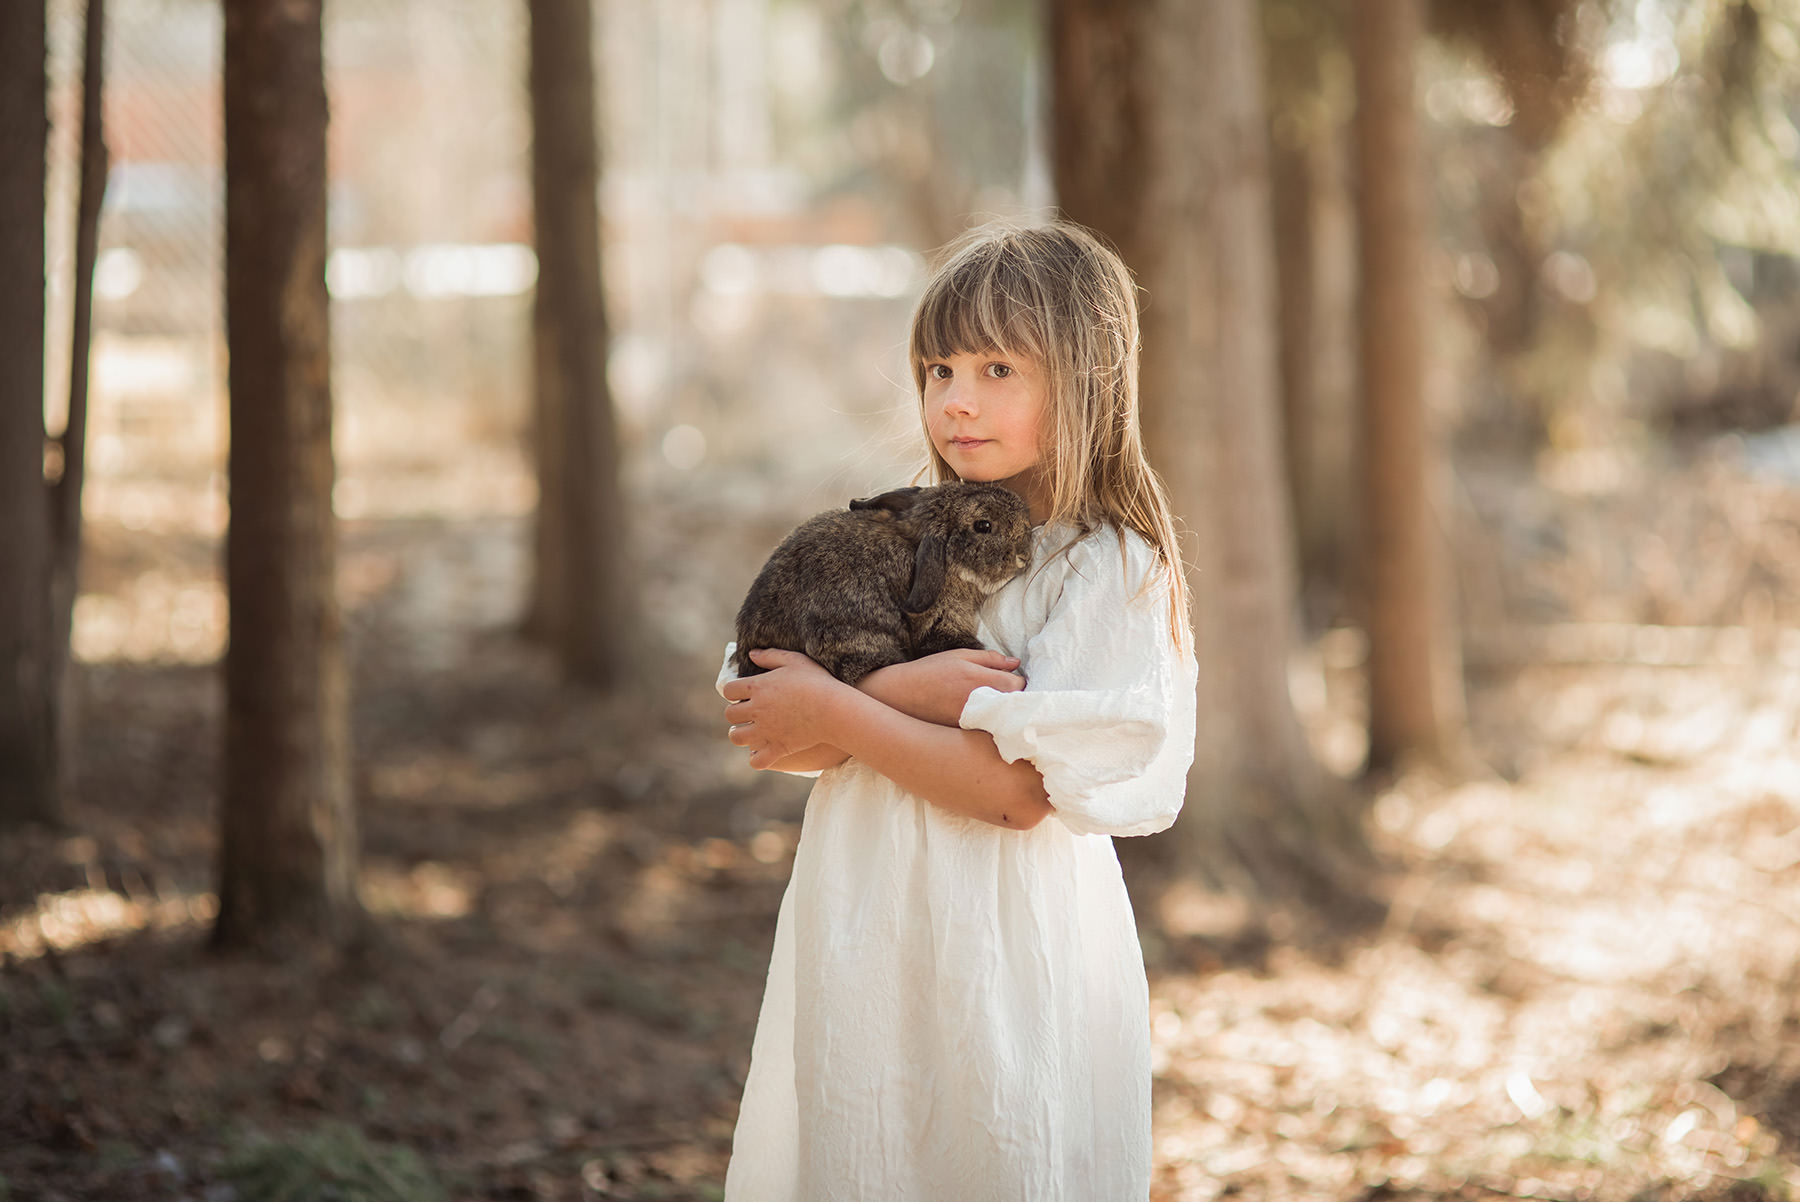 A girl is holding a cat and standing in the forest.